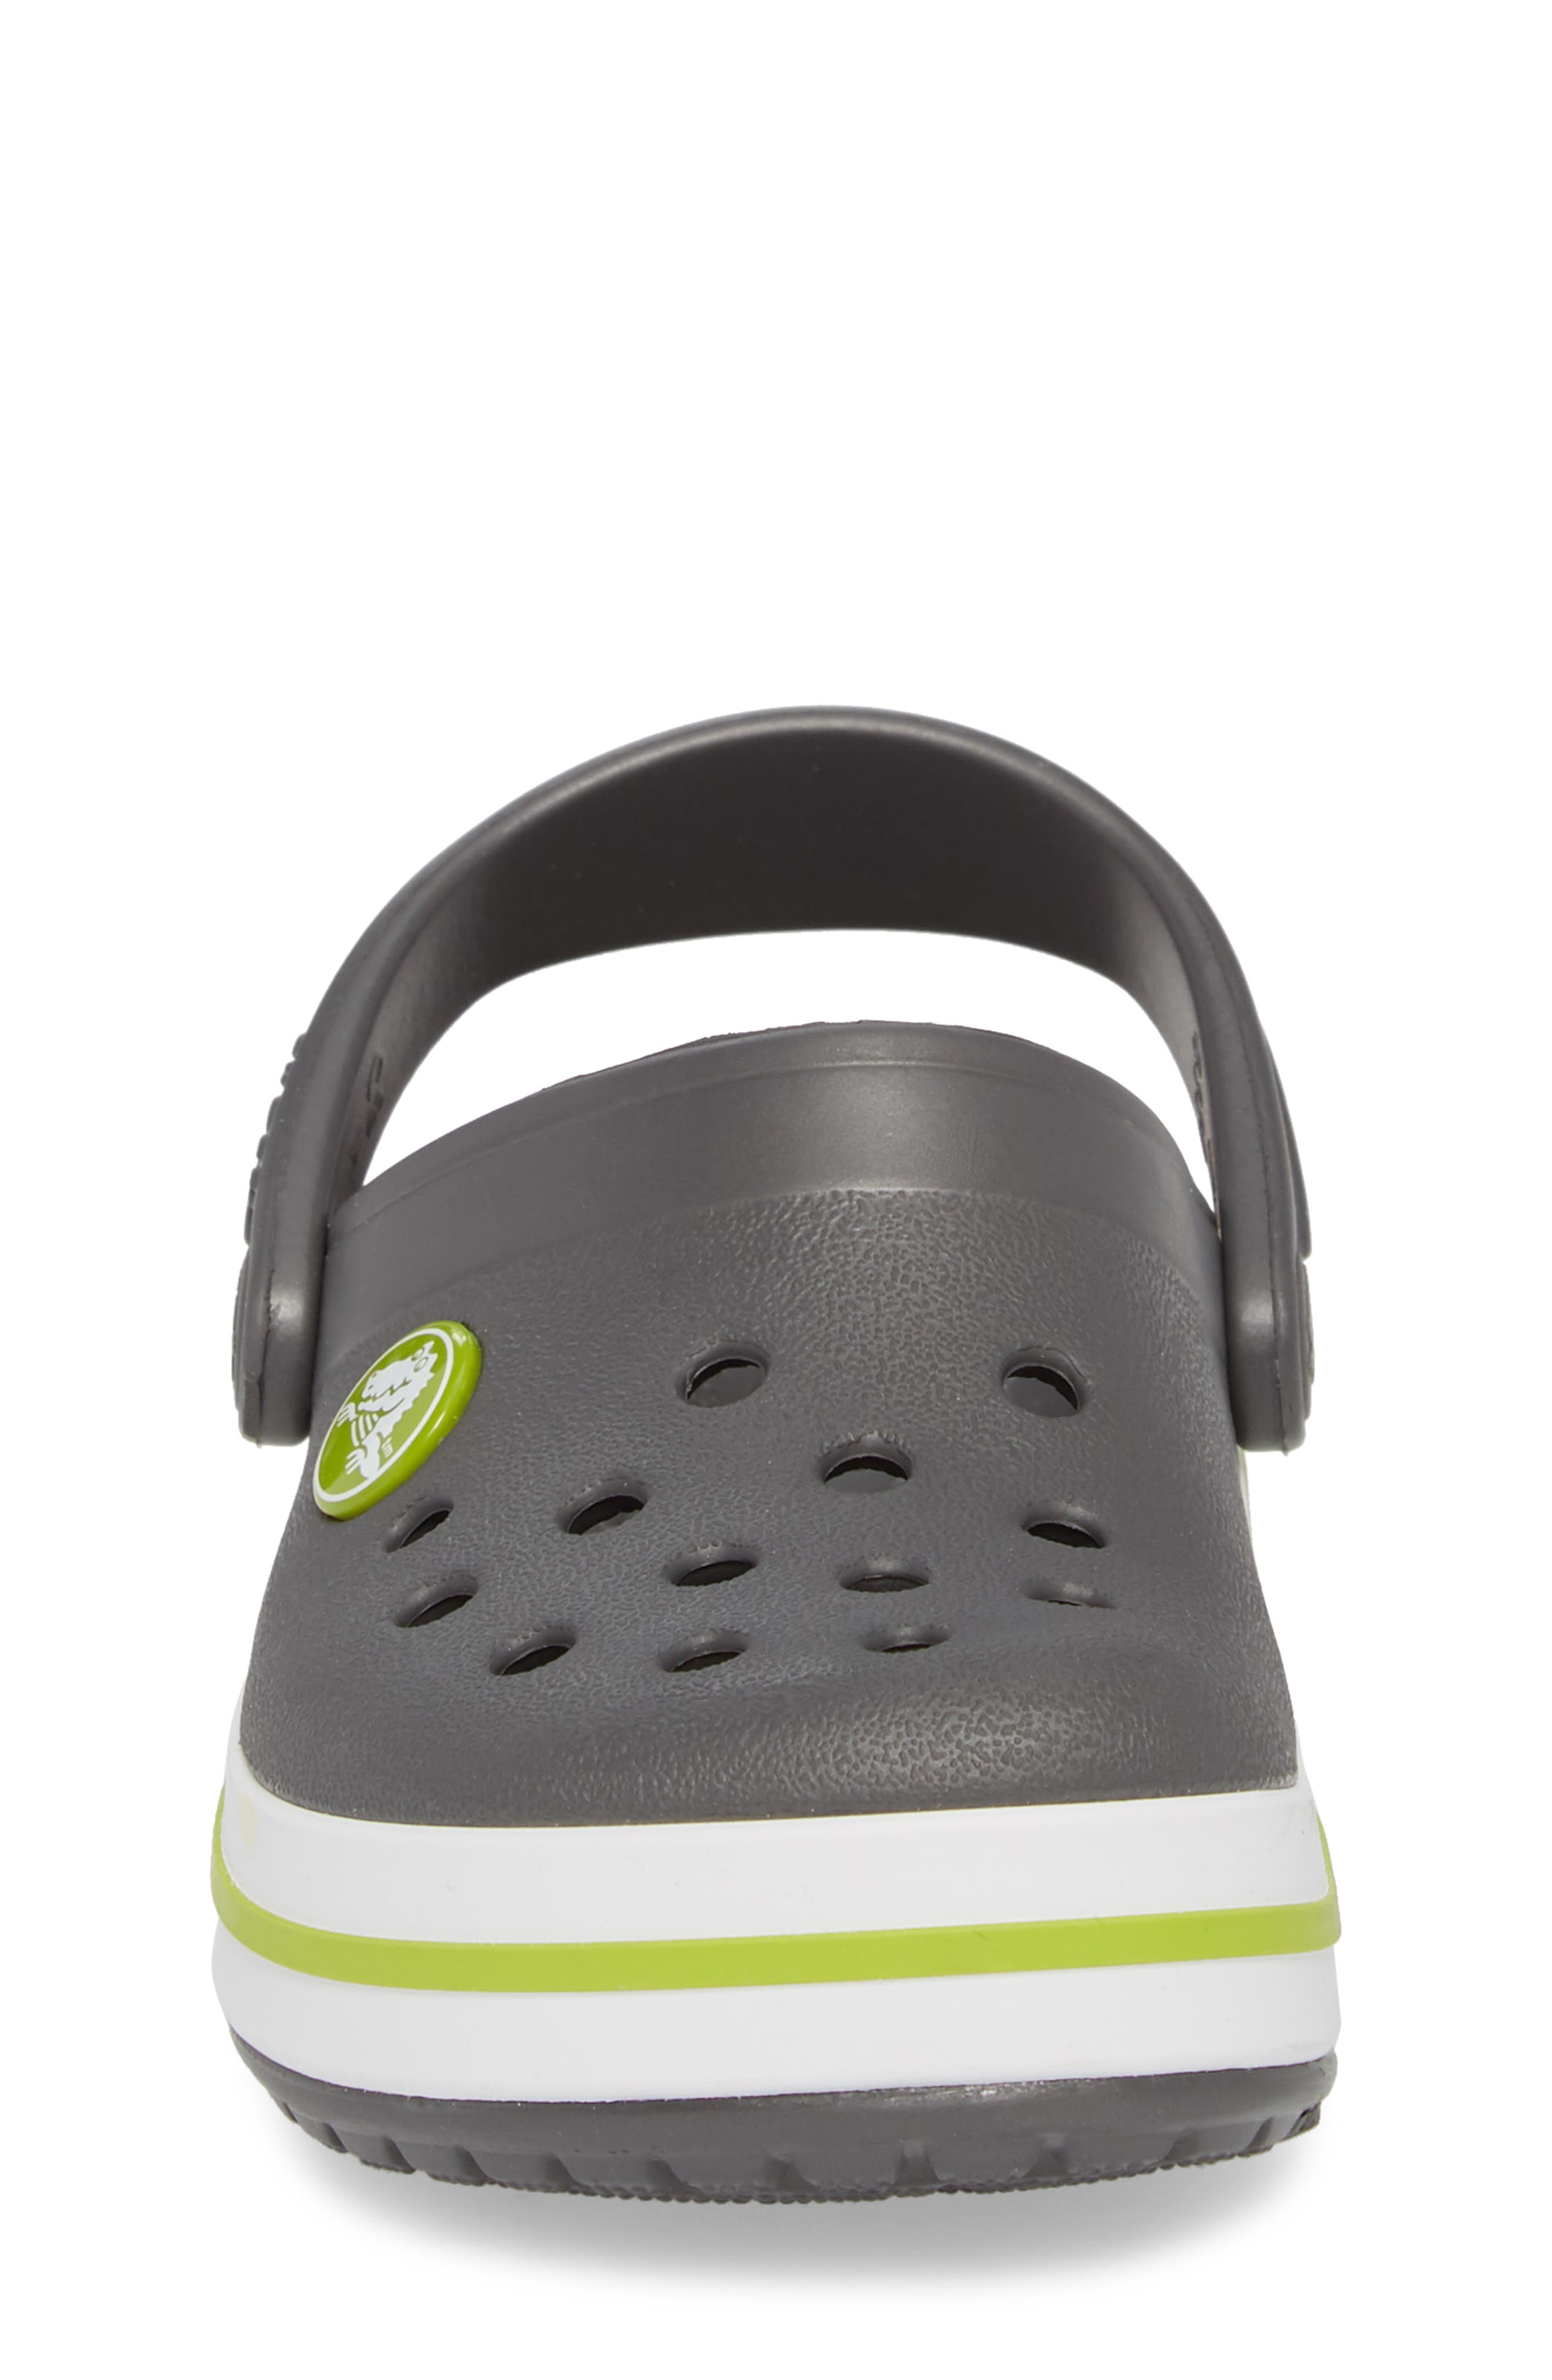 Crocband Clog,                             Alternate thumbnail 4, color,                             GRAPHITE/ GREEN